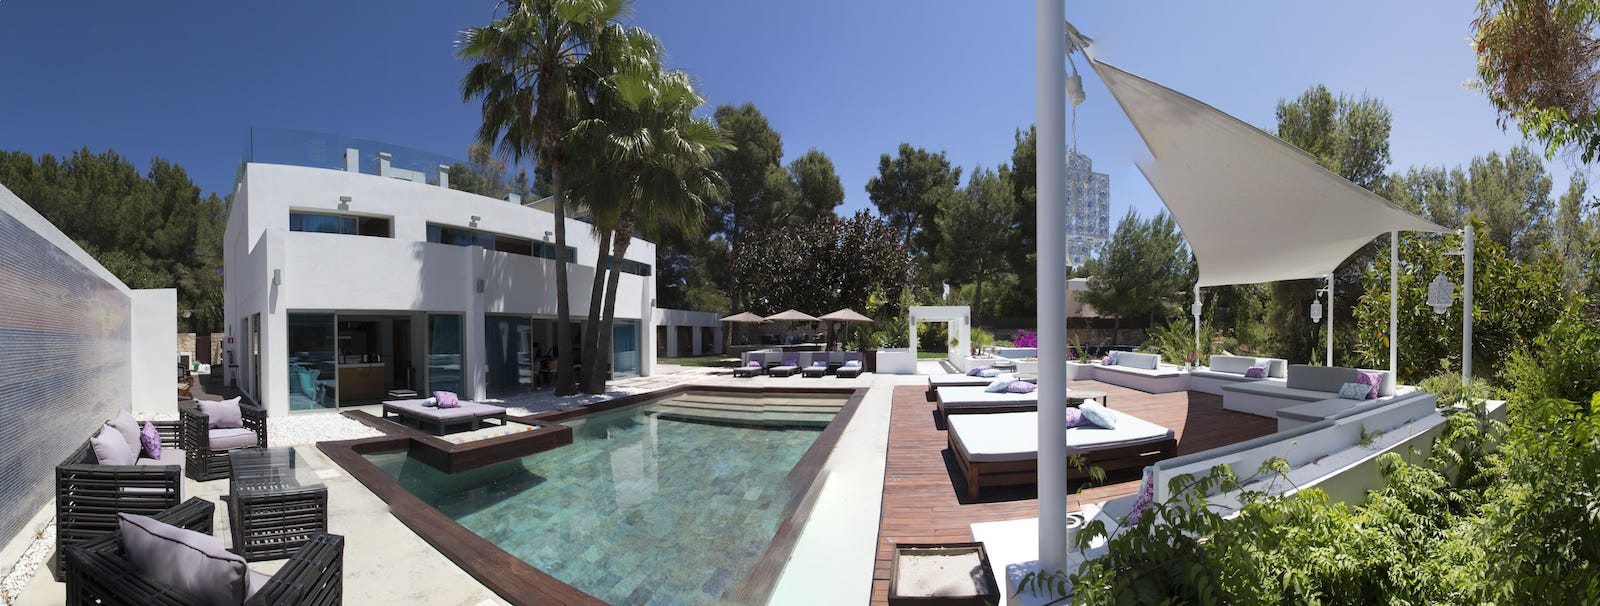 villa ibiza deal venue for retreats and intimate functions